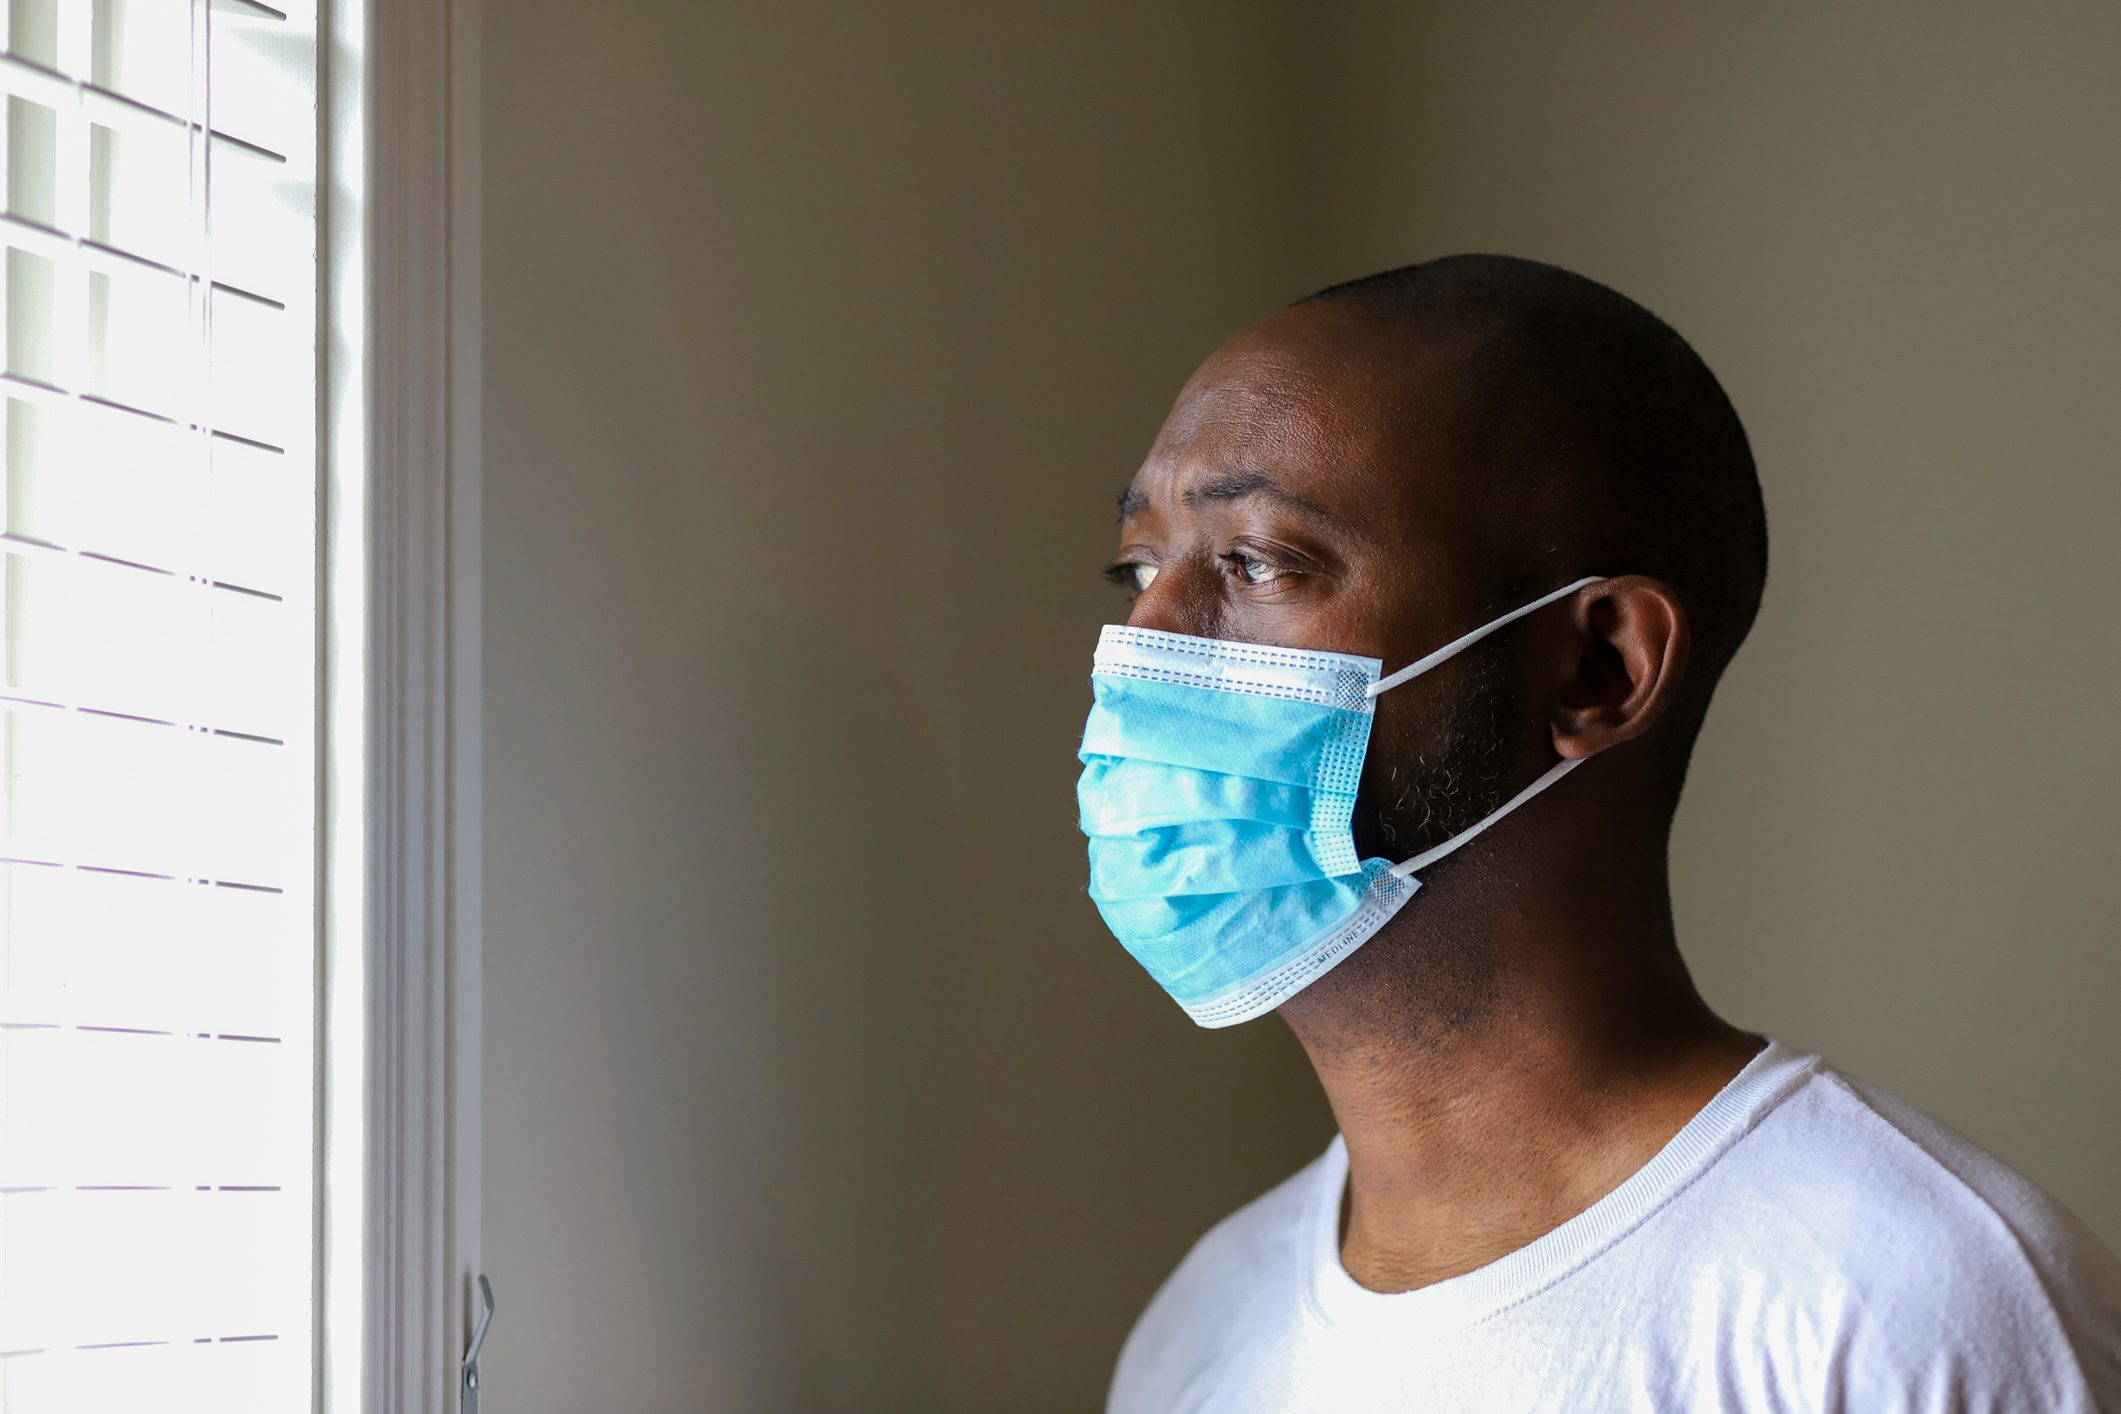 man with face mask in house looking out window